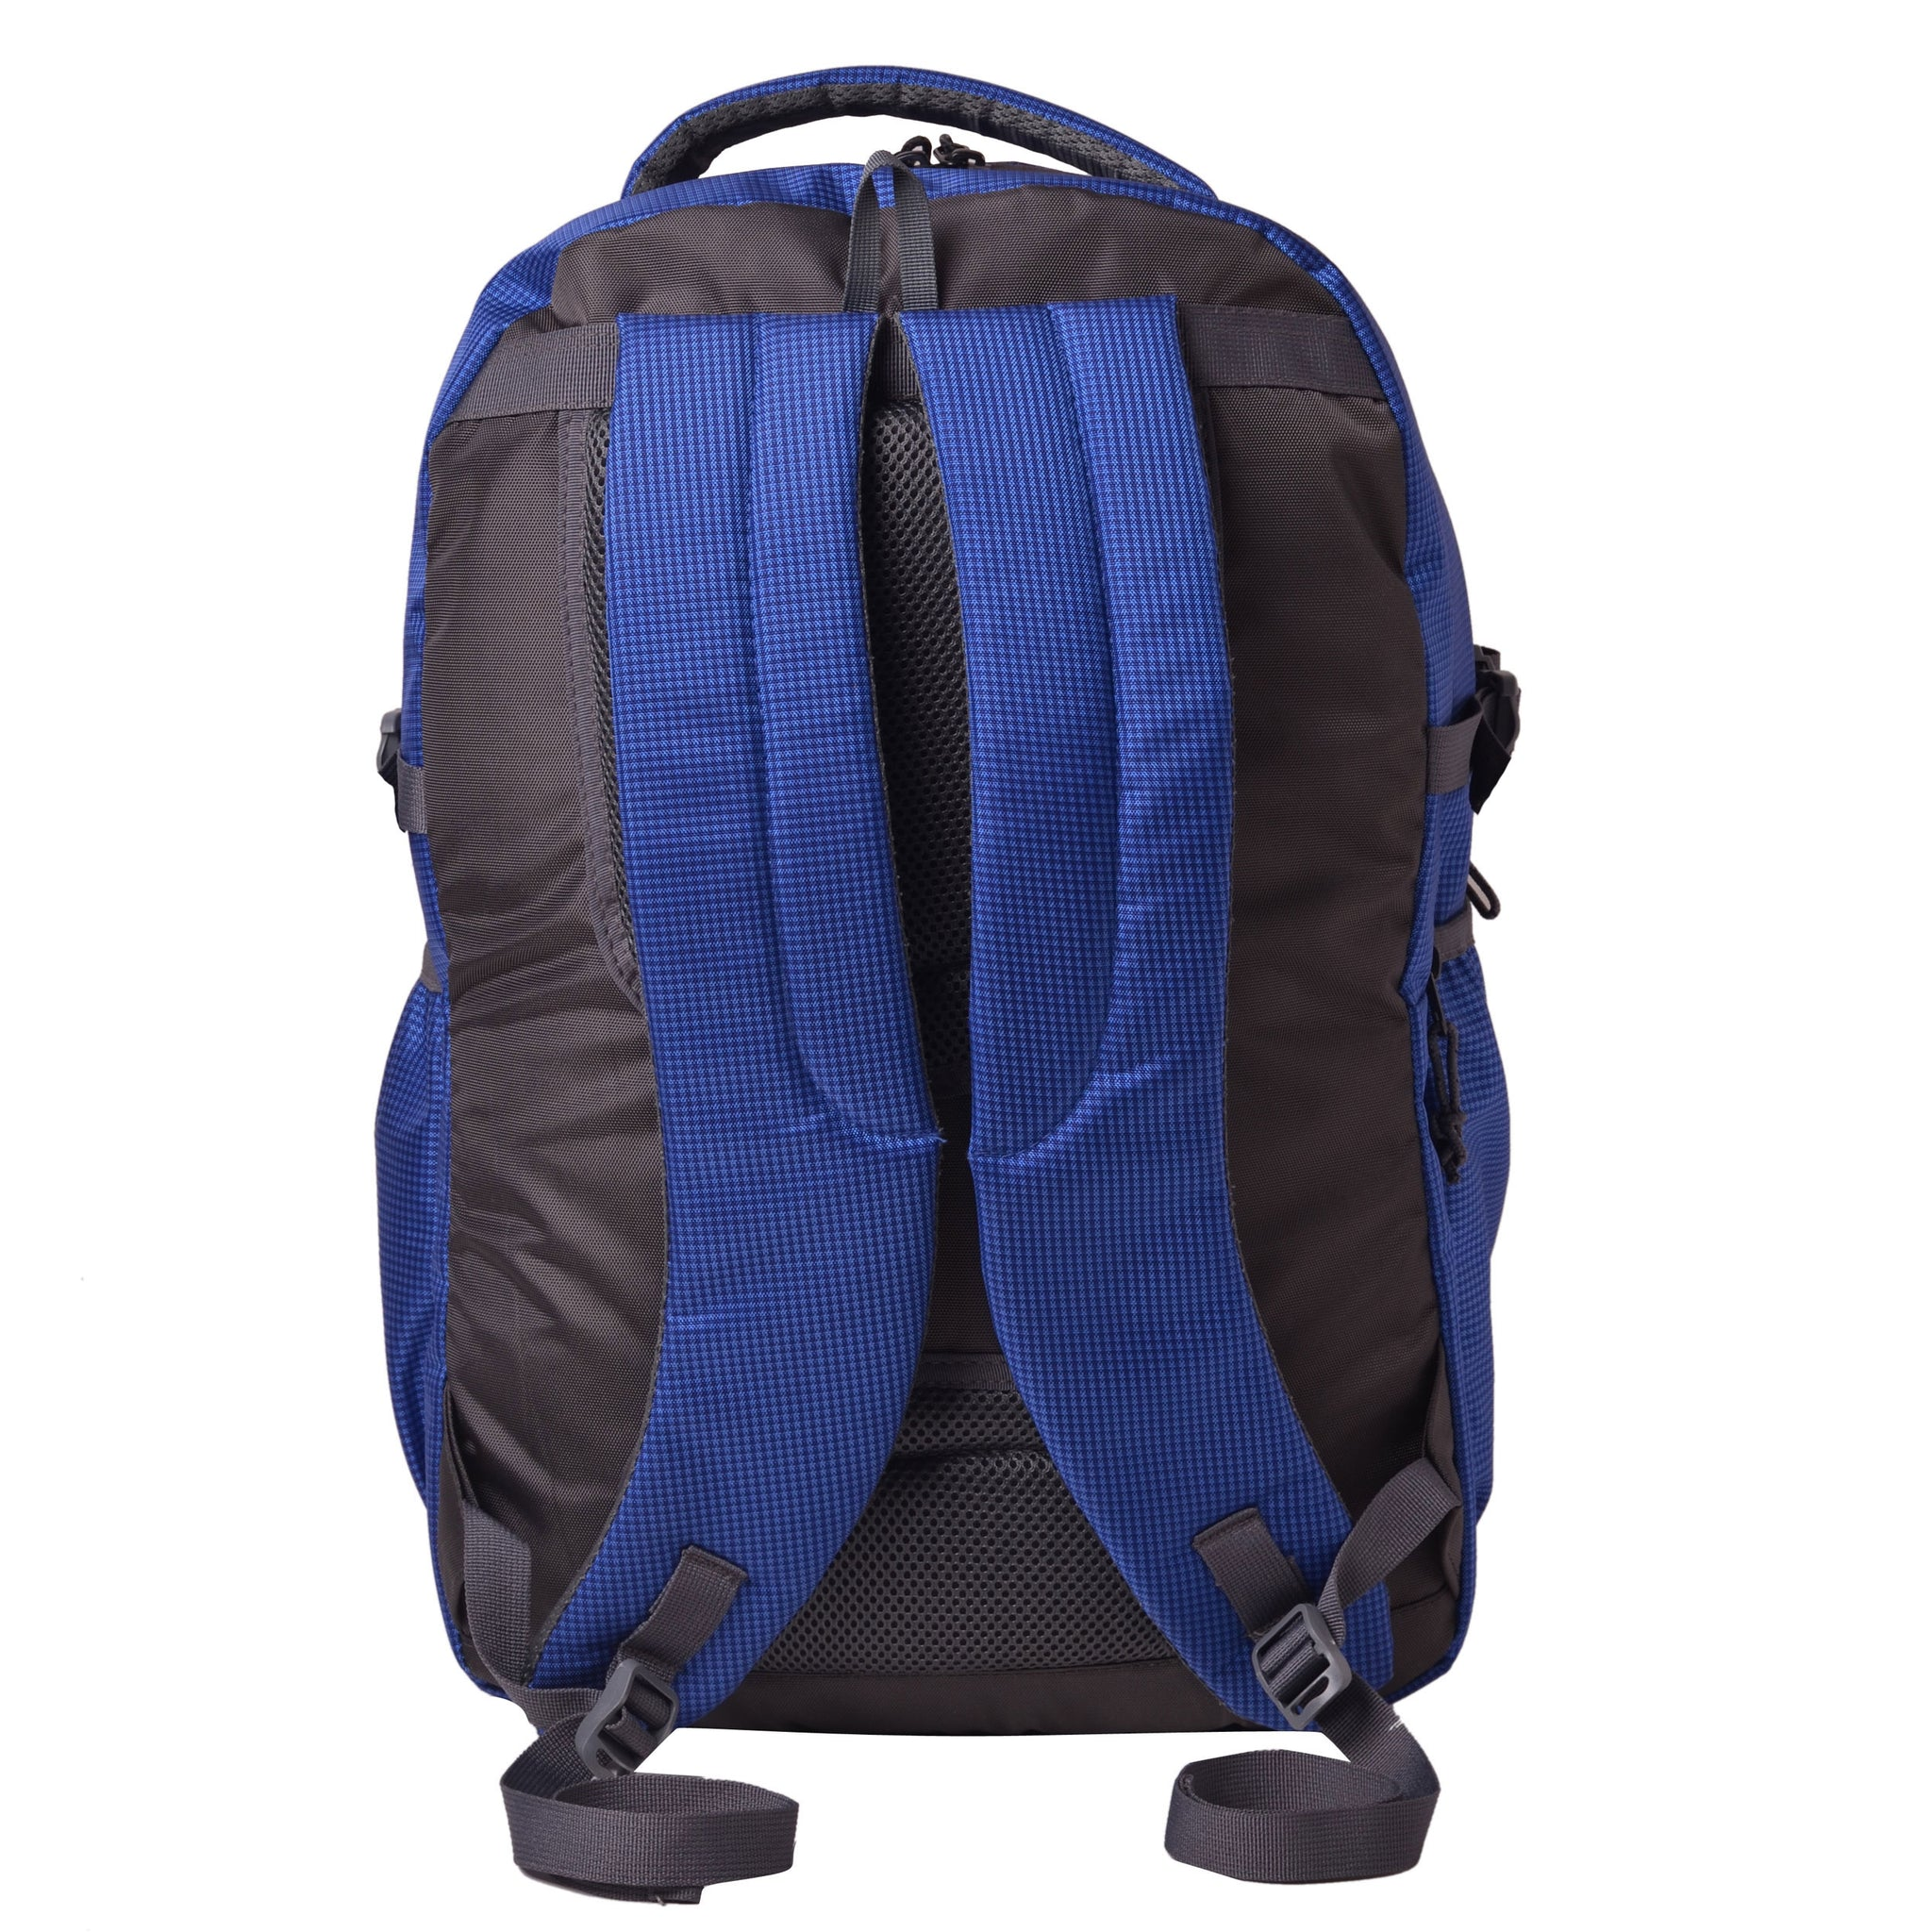 F Gear Talent Laptop Backpack With Rain Cover 32 Liters (Navy Blue,Black)